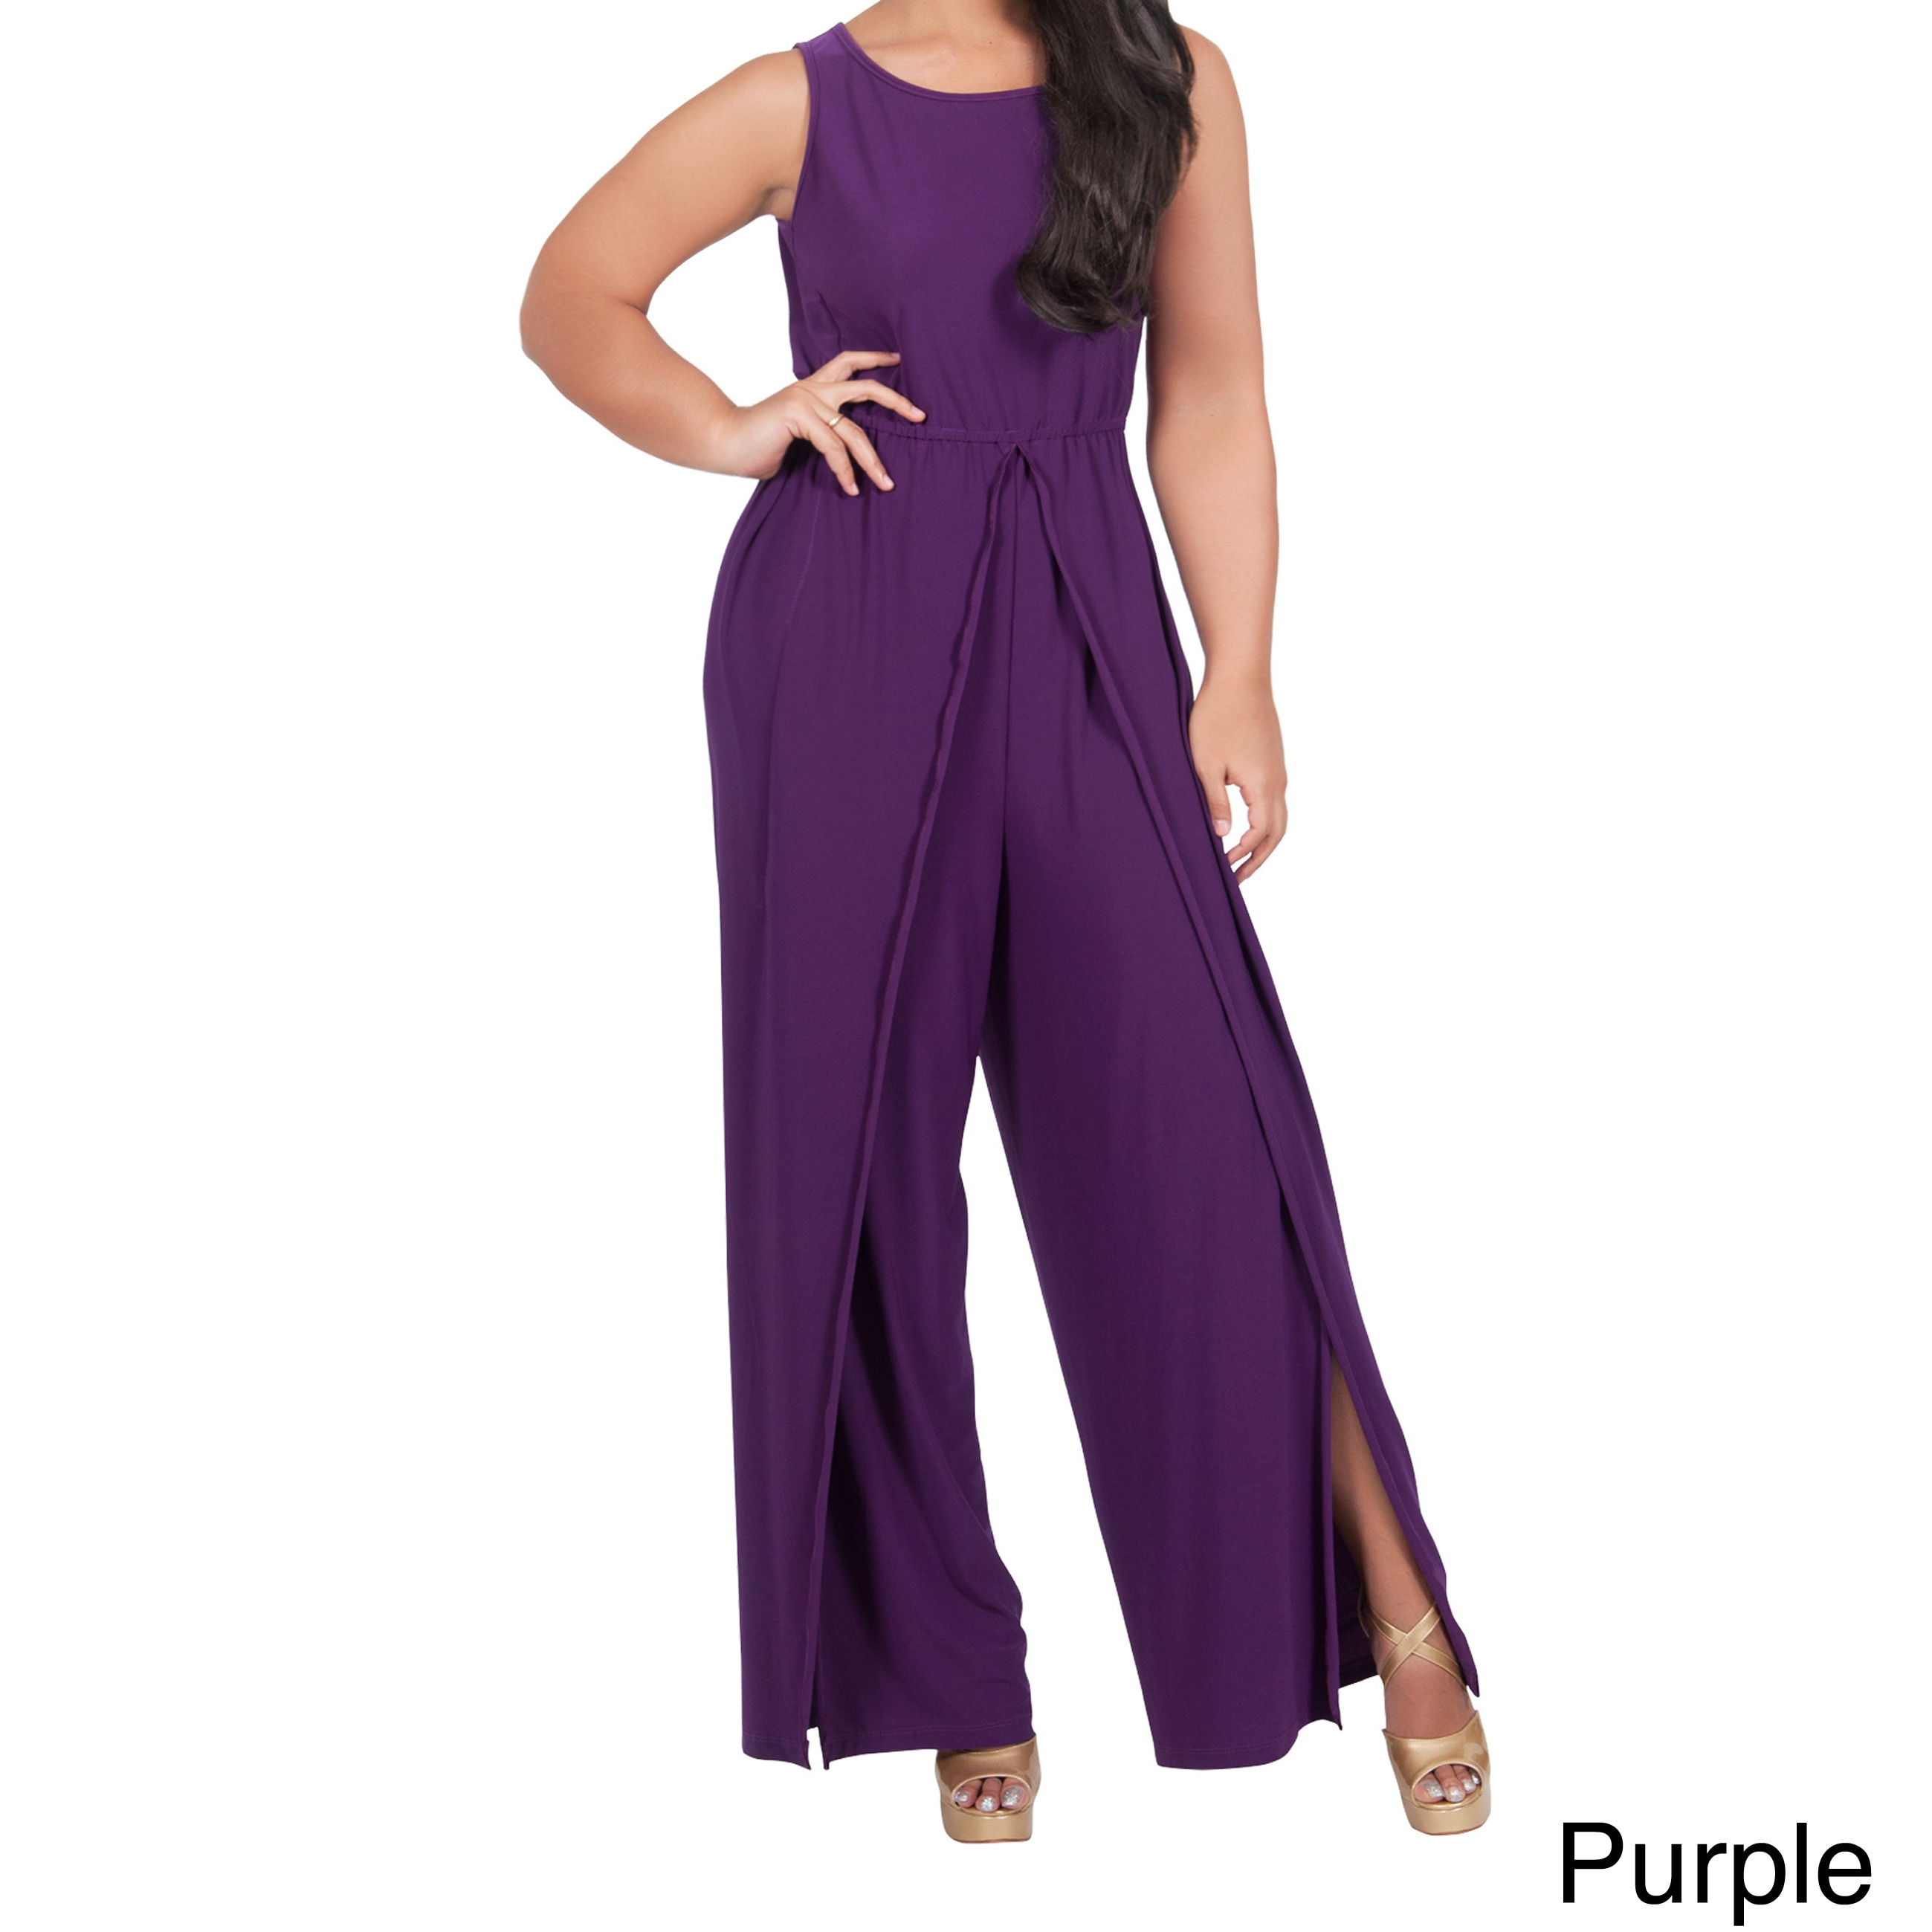 d0a75a069eb3 KOH KOH Women s Plus Size Sleeveless Round Neck Slimming Flared 1-piece  Pantsuit with Side Slits